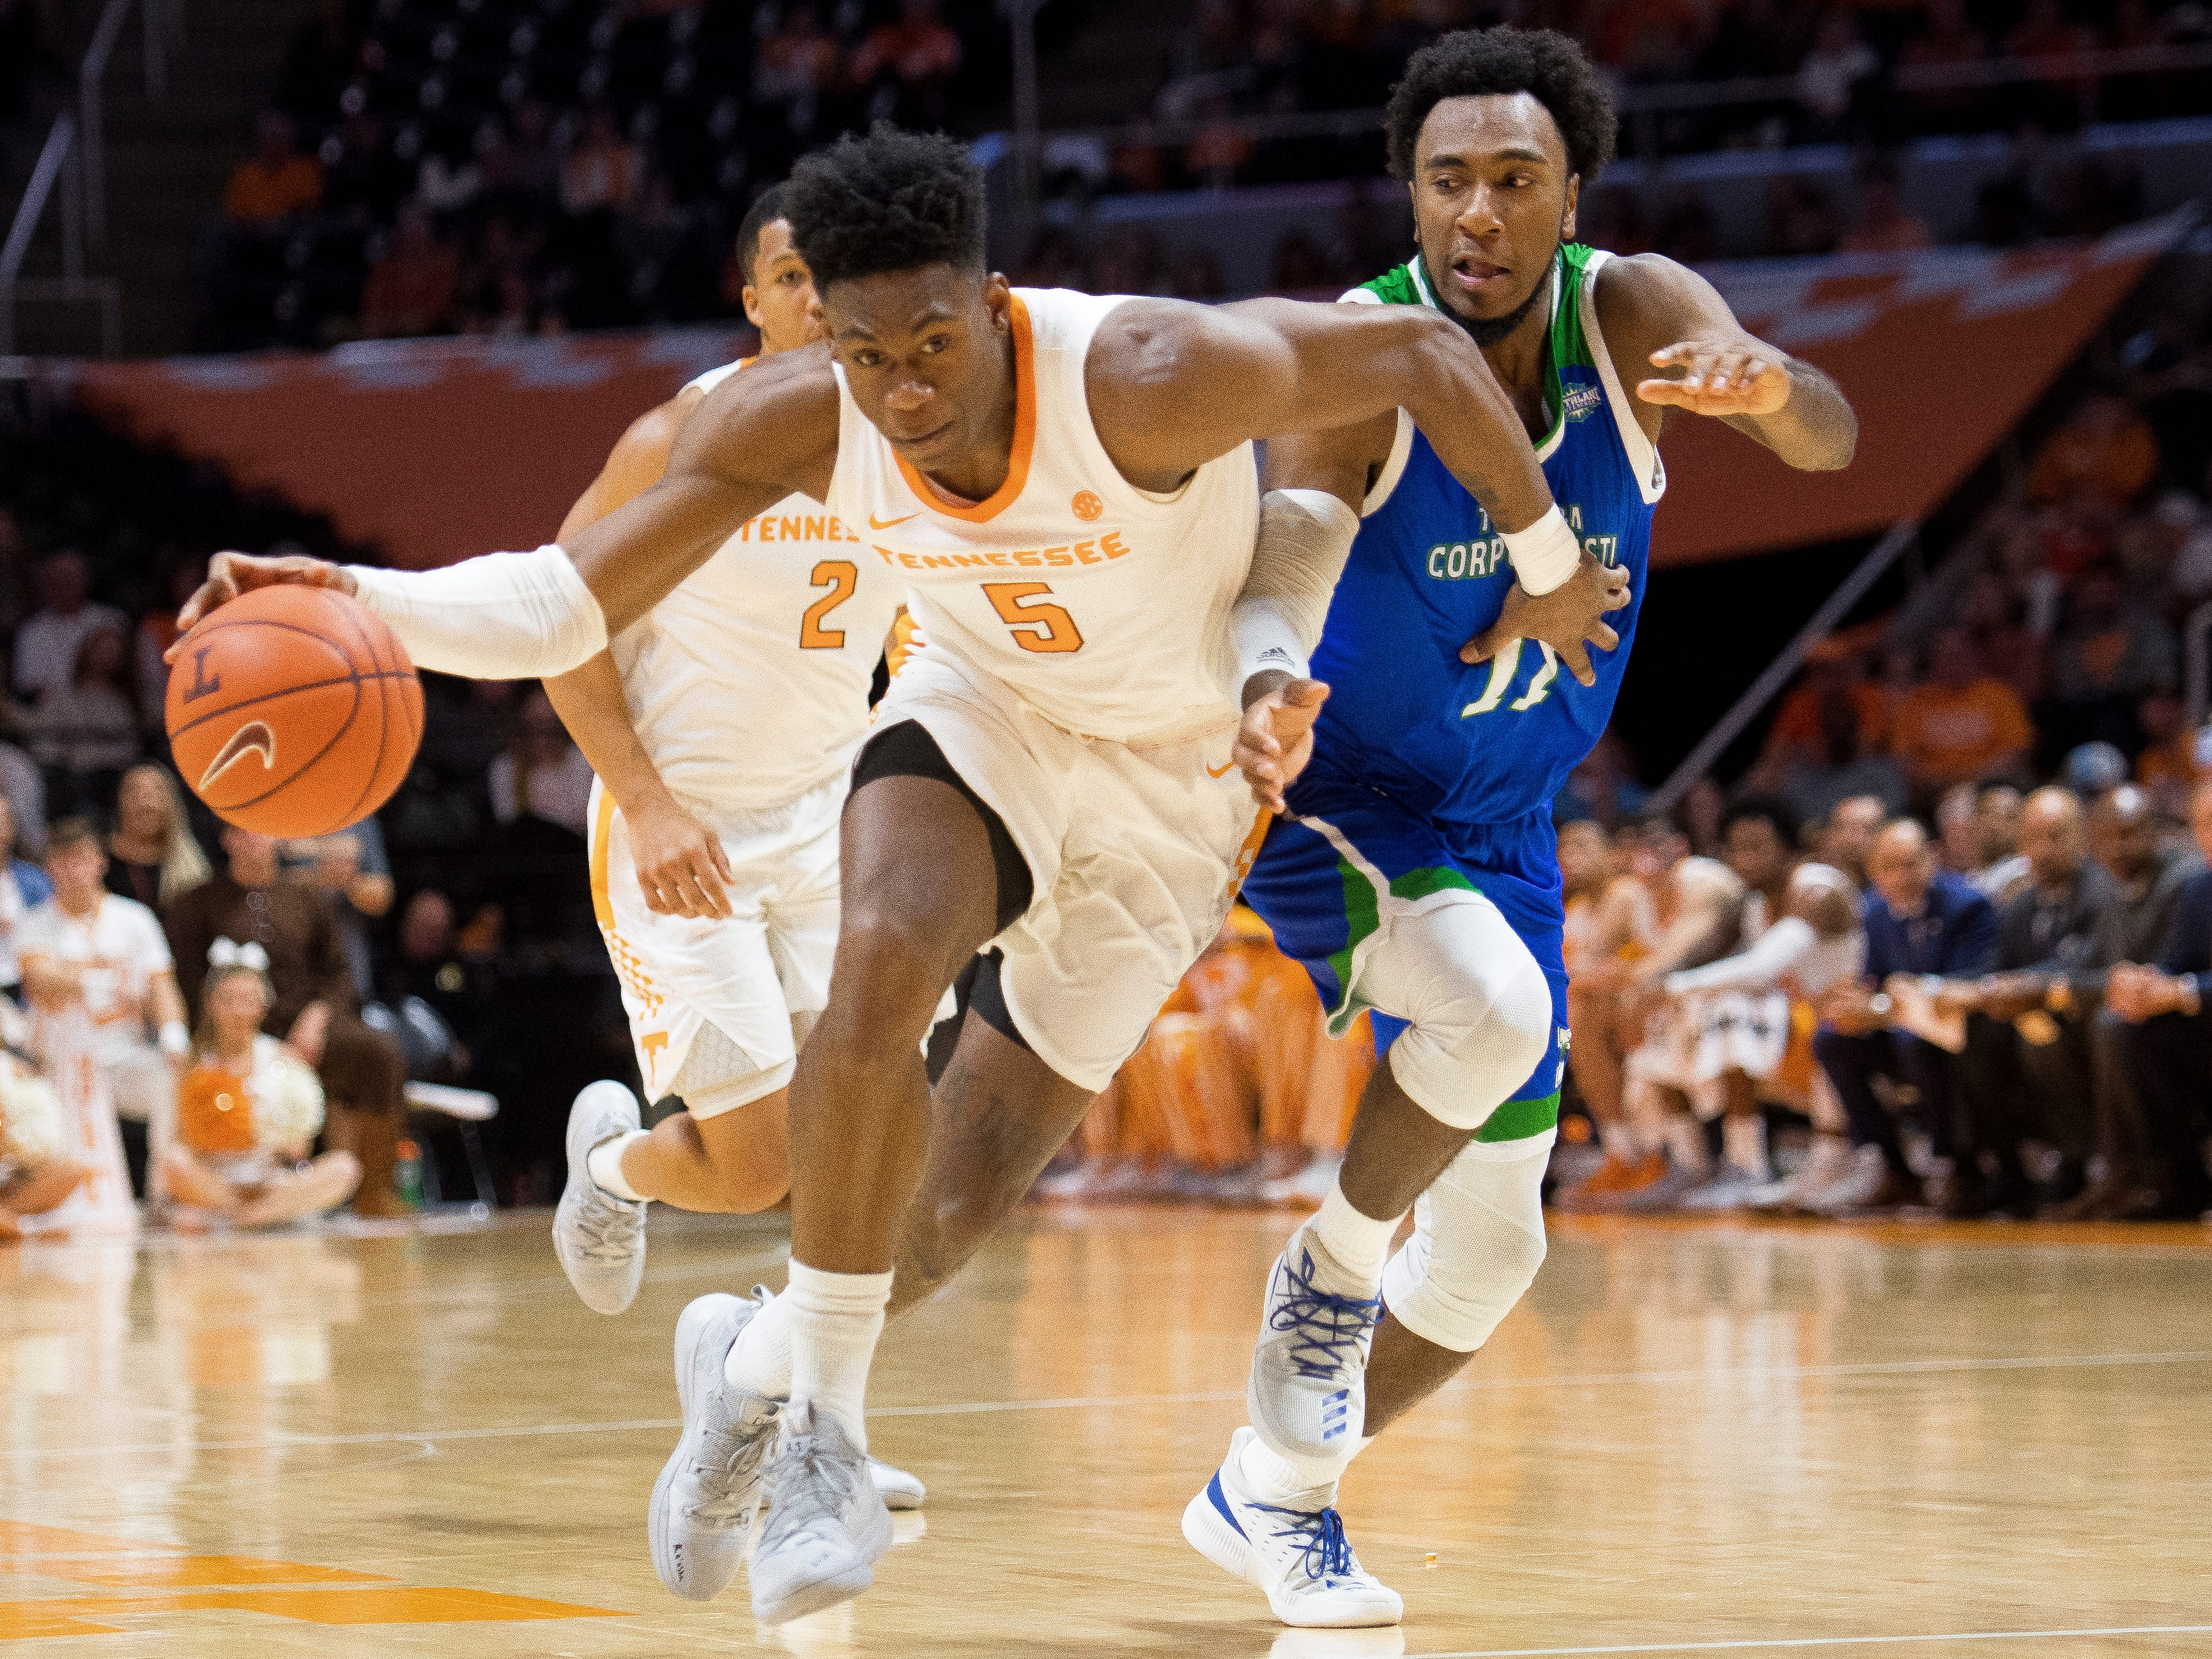 Tennessee guard Admiral Schofield (5) drives down the court after stealing the ball away from Texas A&M-Corpus Christi guard Kareem South (11) during the first half of the Tennessee Volunteers' home basketball game against the Texas A&M-Corpus Christi Islanders at Thompson-Boling Arena on Sunday, December 2, 2018.